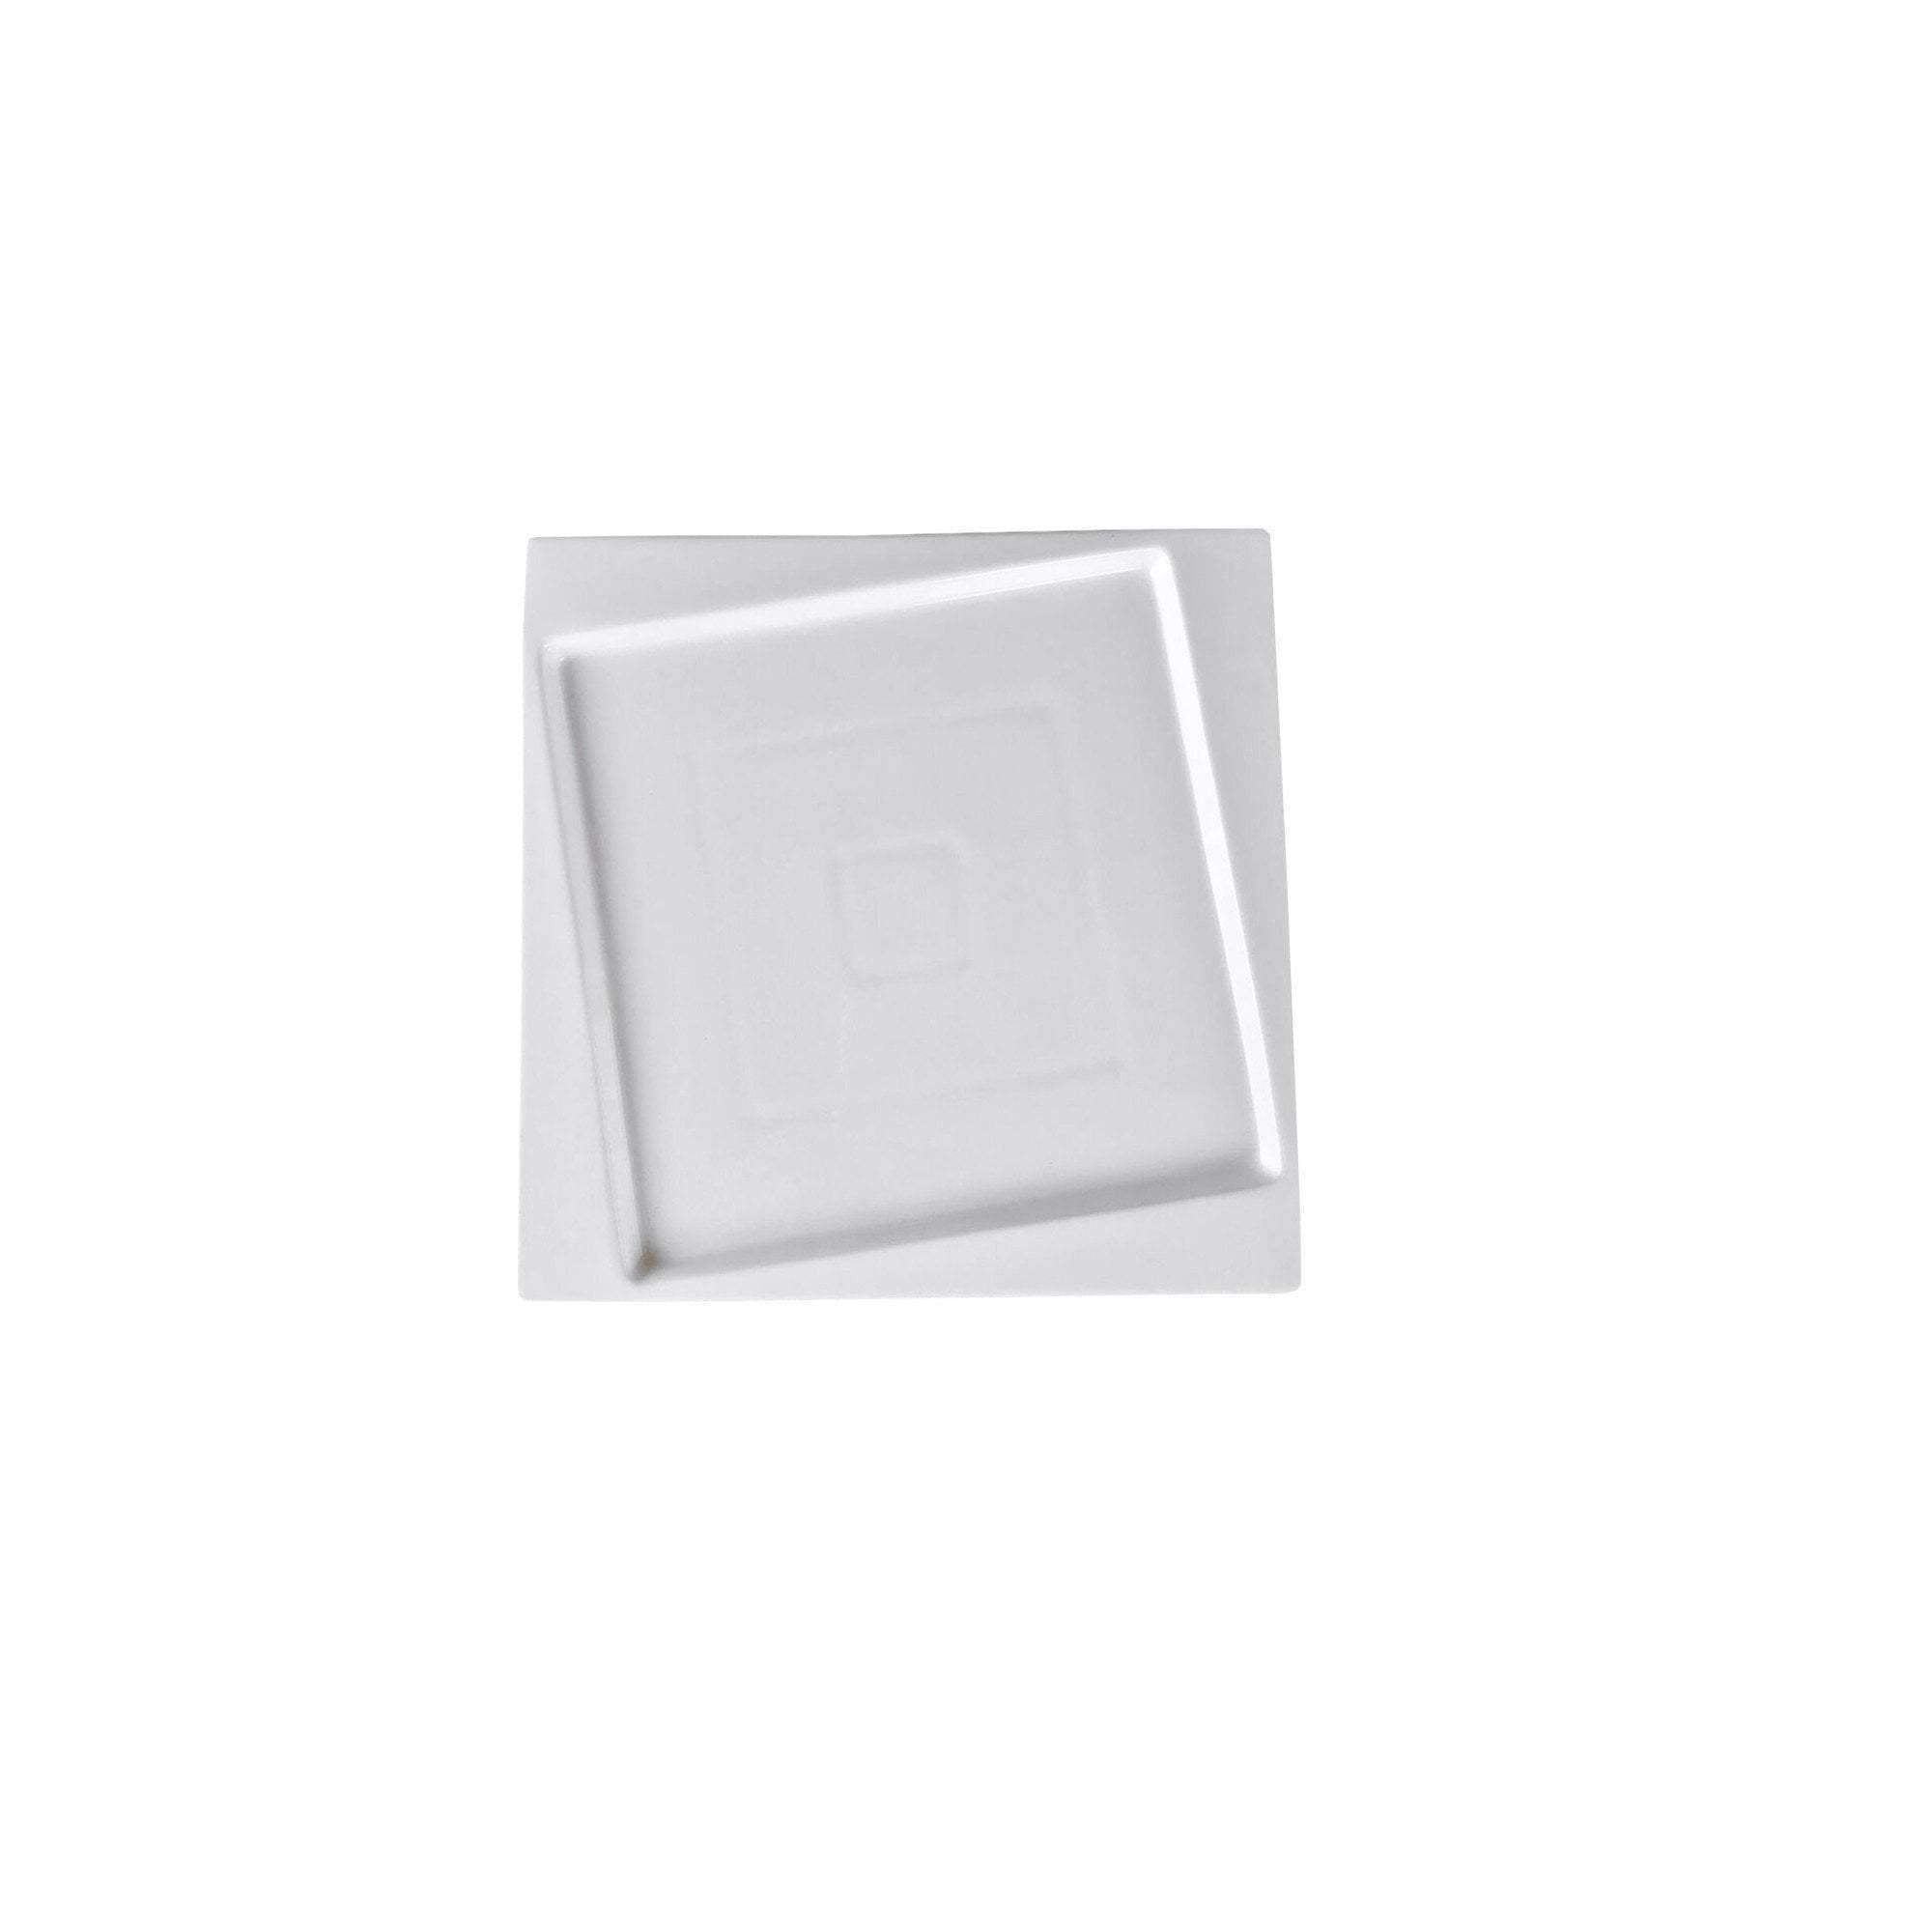 "Vie Belles Tabletop Square Collection 6.3"" (16 cm) Porcelain Bread and Butter Plate"